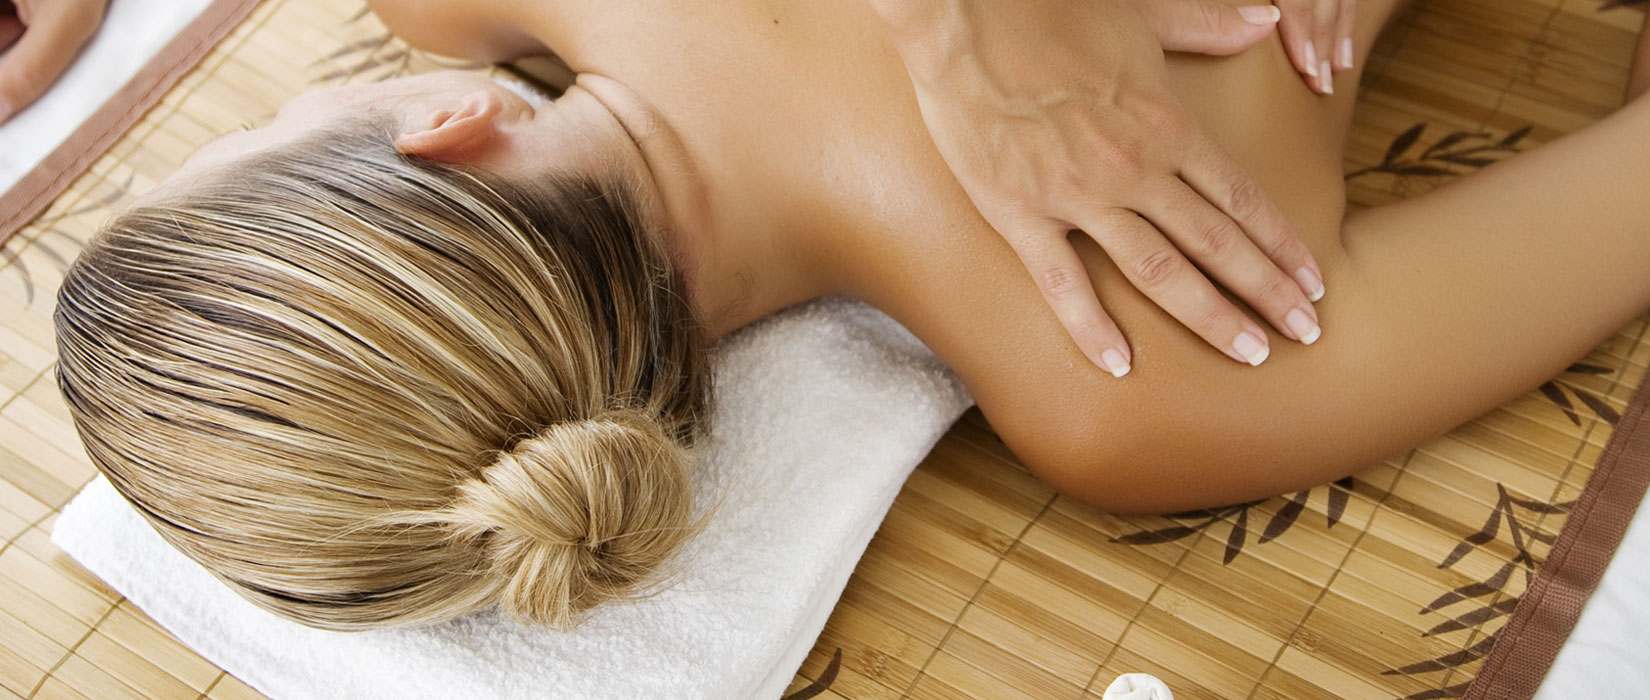 alpharetta georgia massage therapy